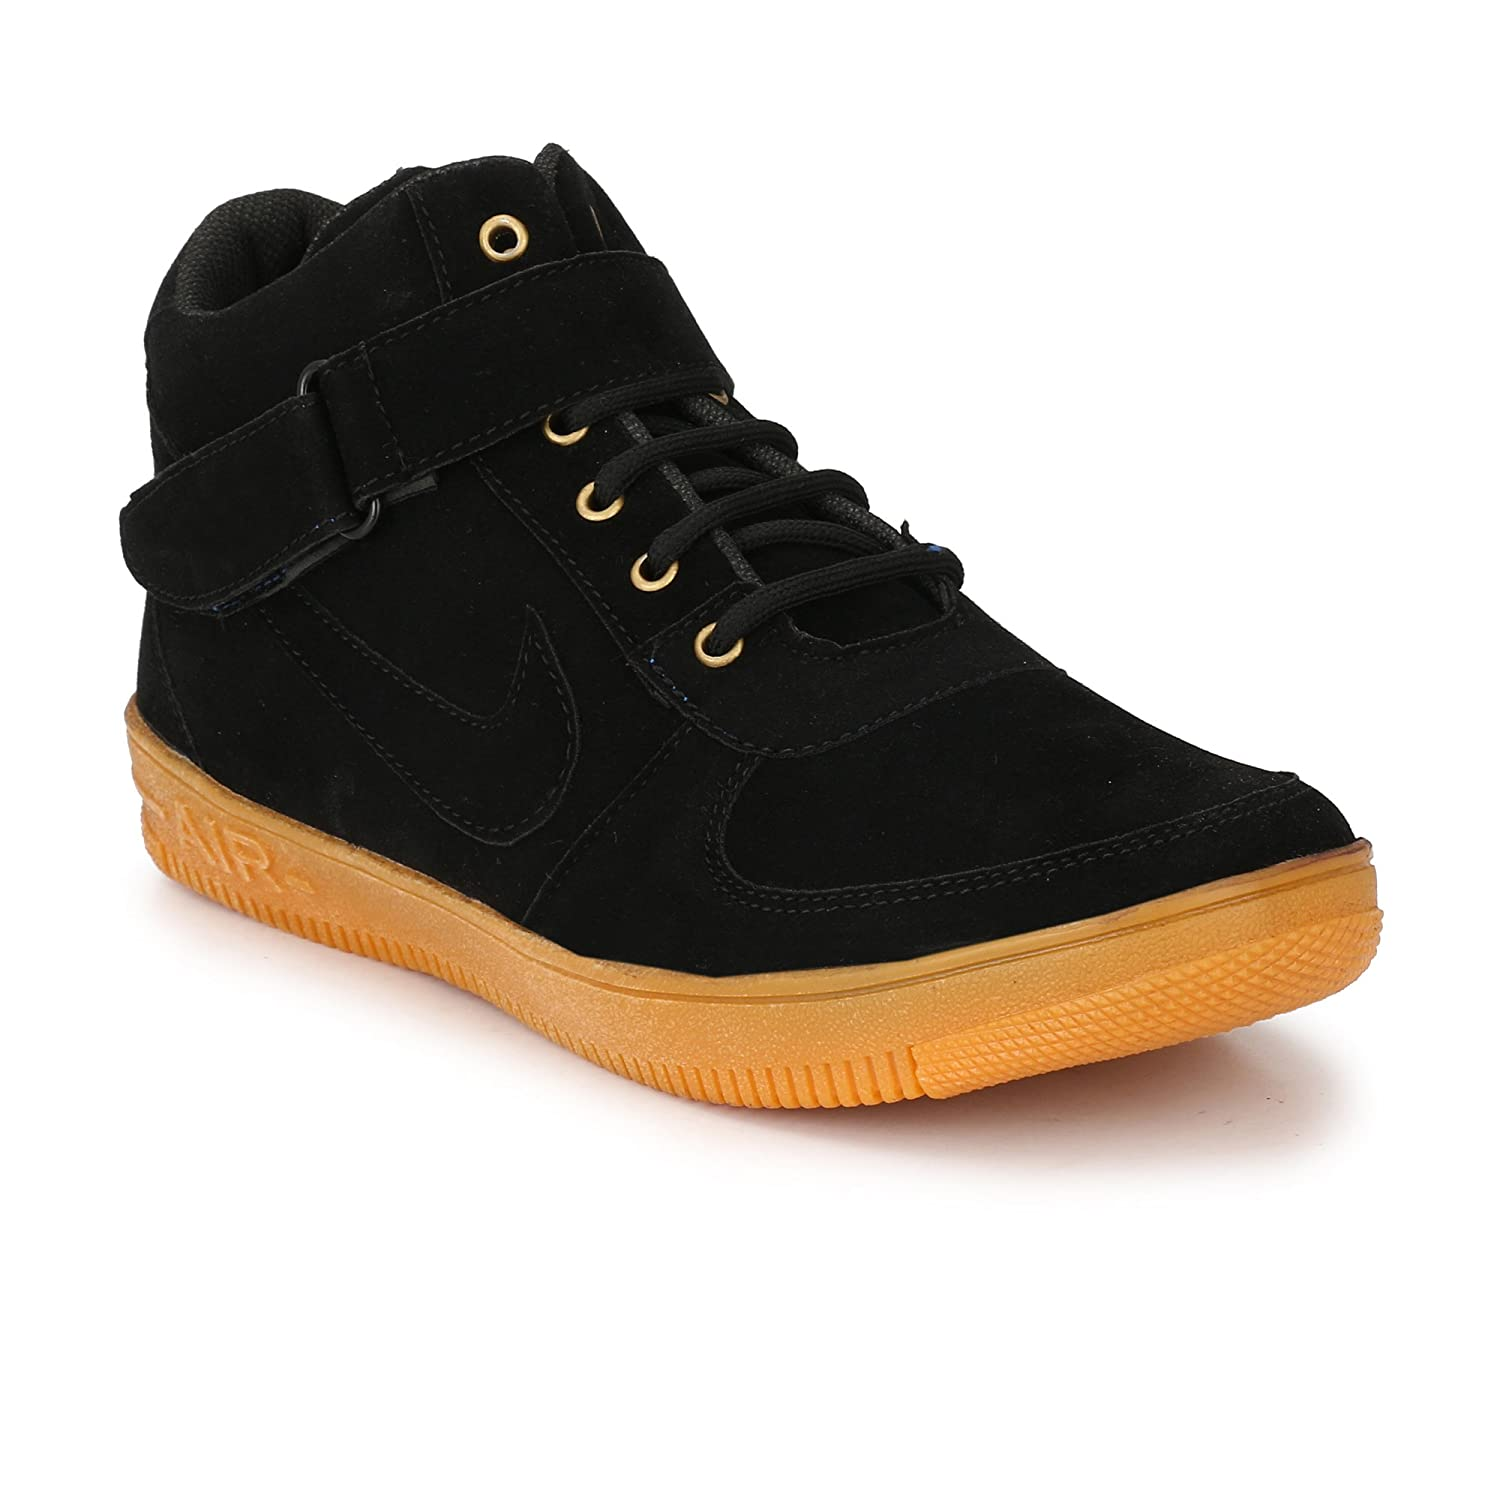 9fedd09a72e4 Dev Shoes Stylish Men s High Ankle Black and Green Casual Shoe  Amazon.in   Shoes   Handbags